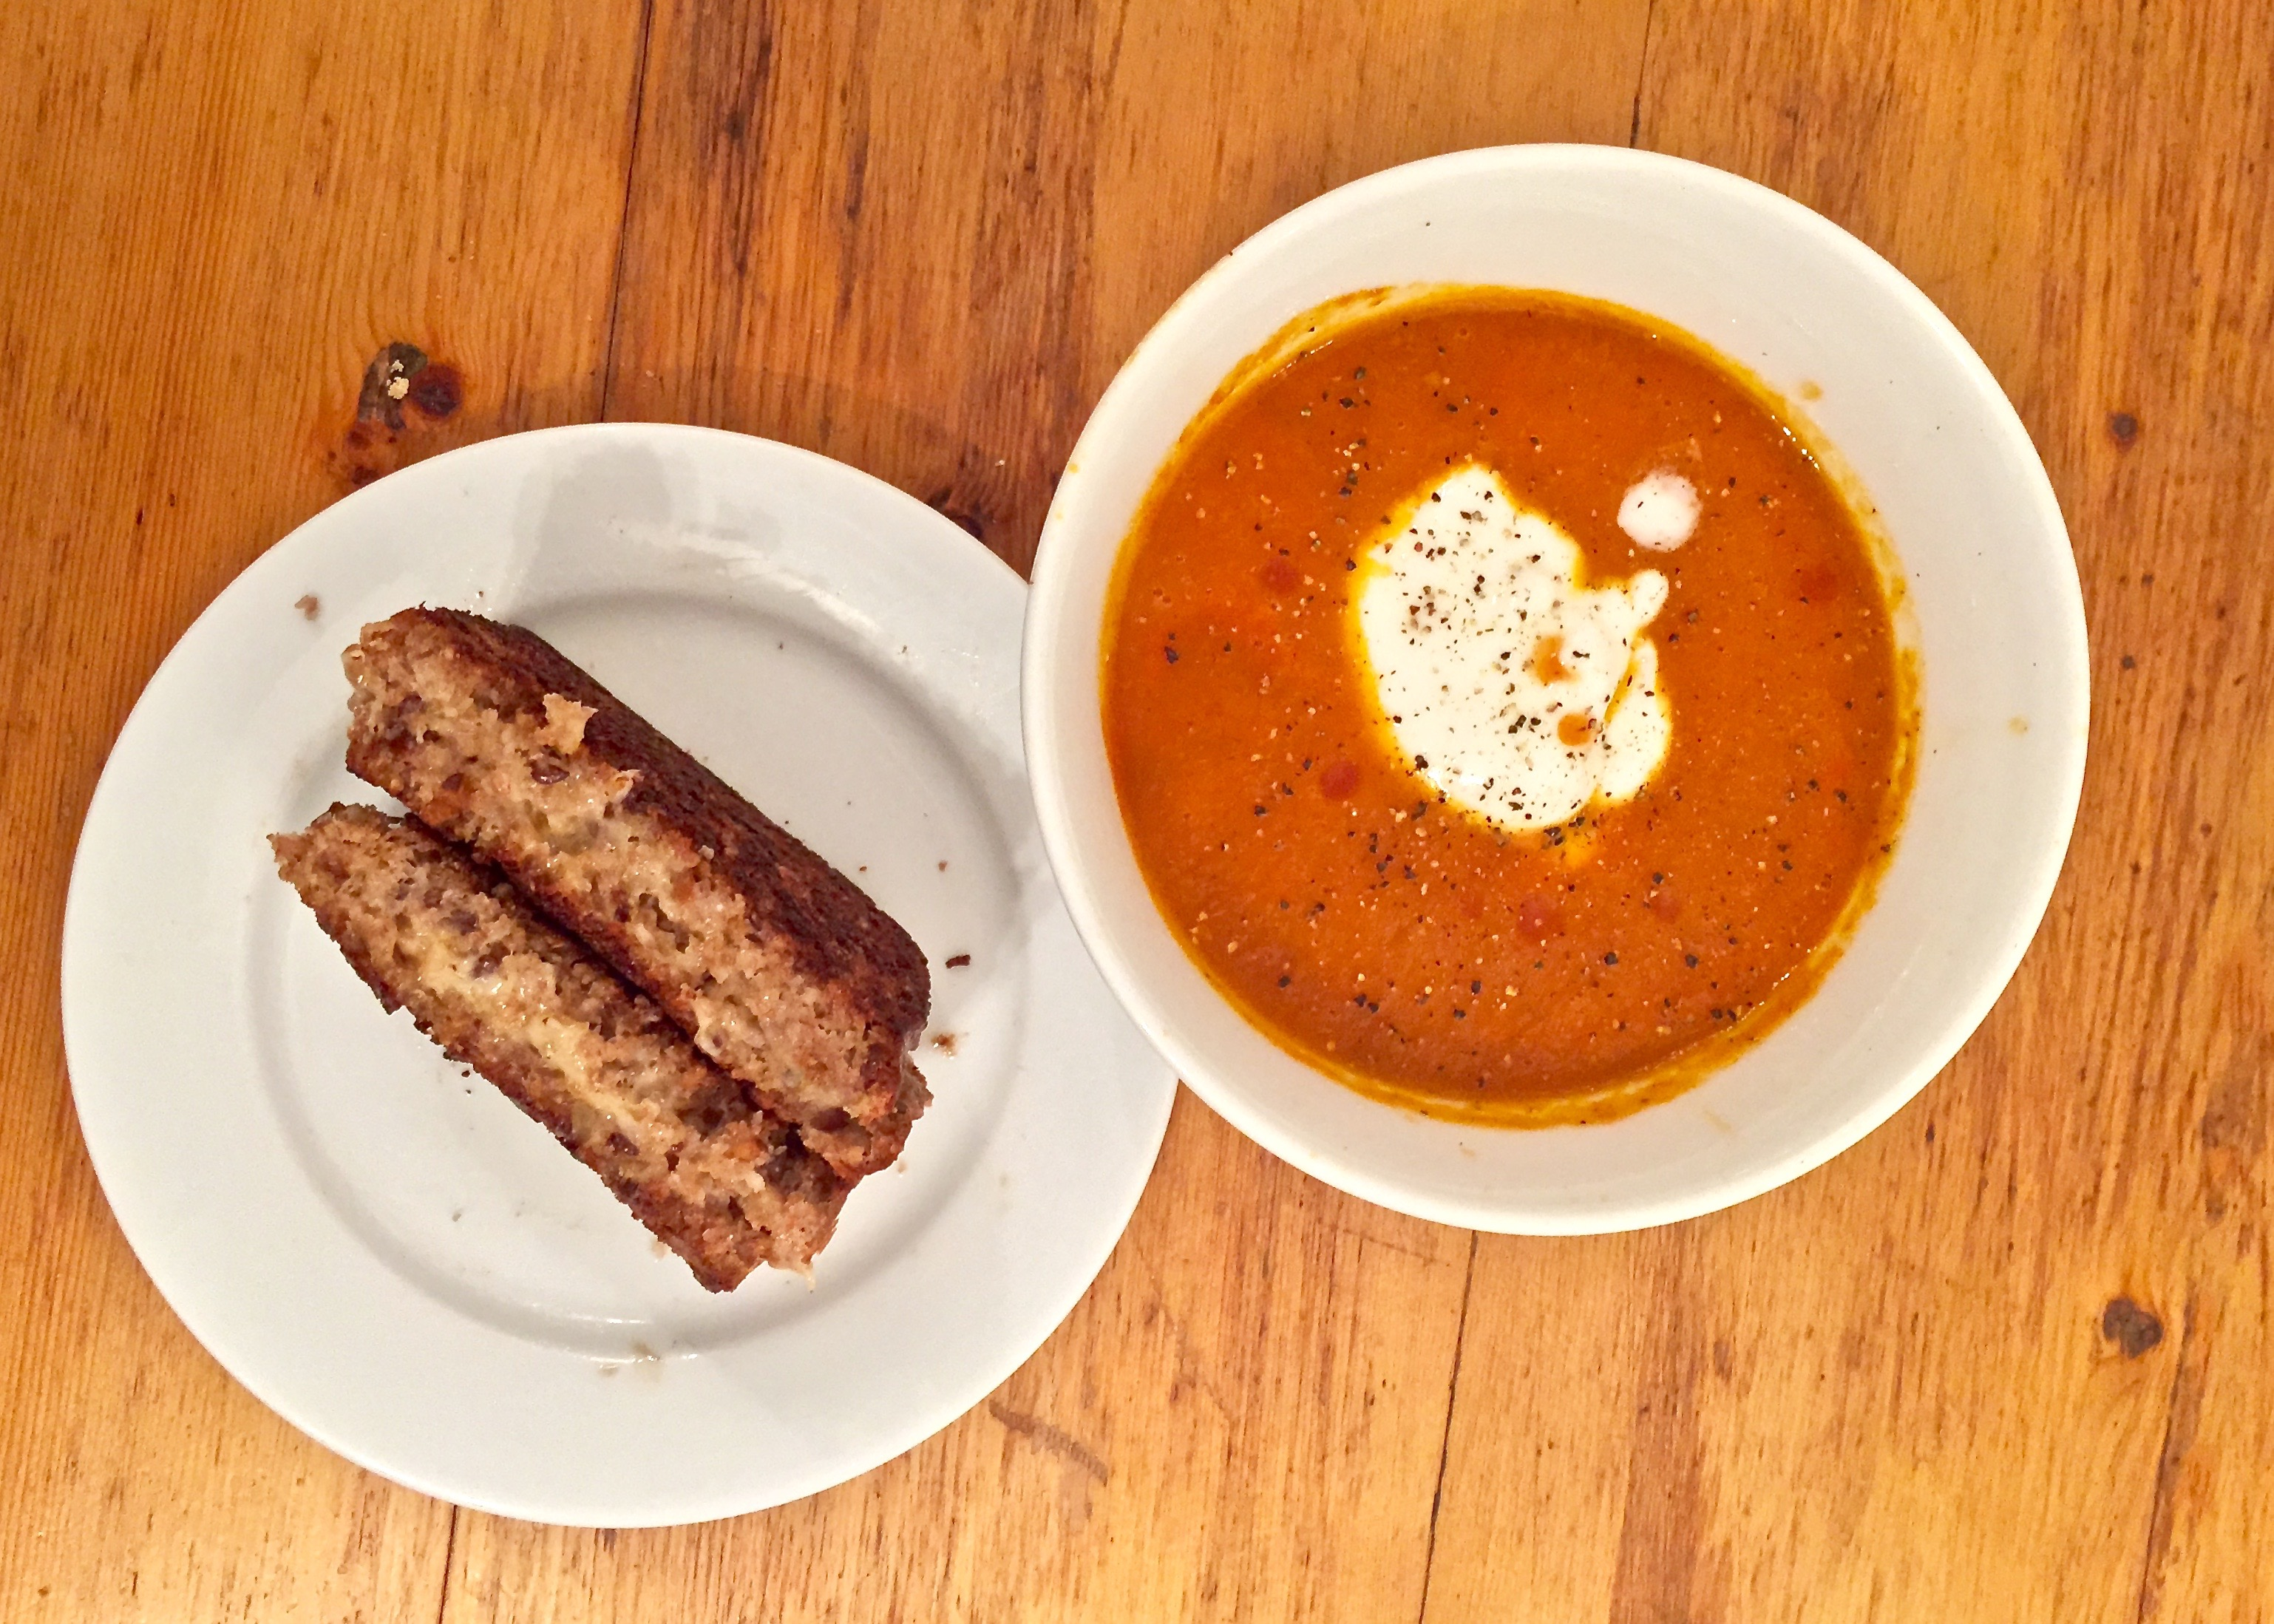 Tomato soup and toasted cheese